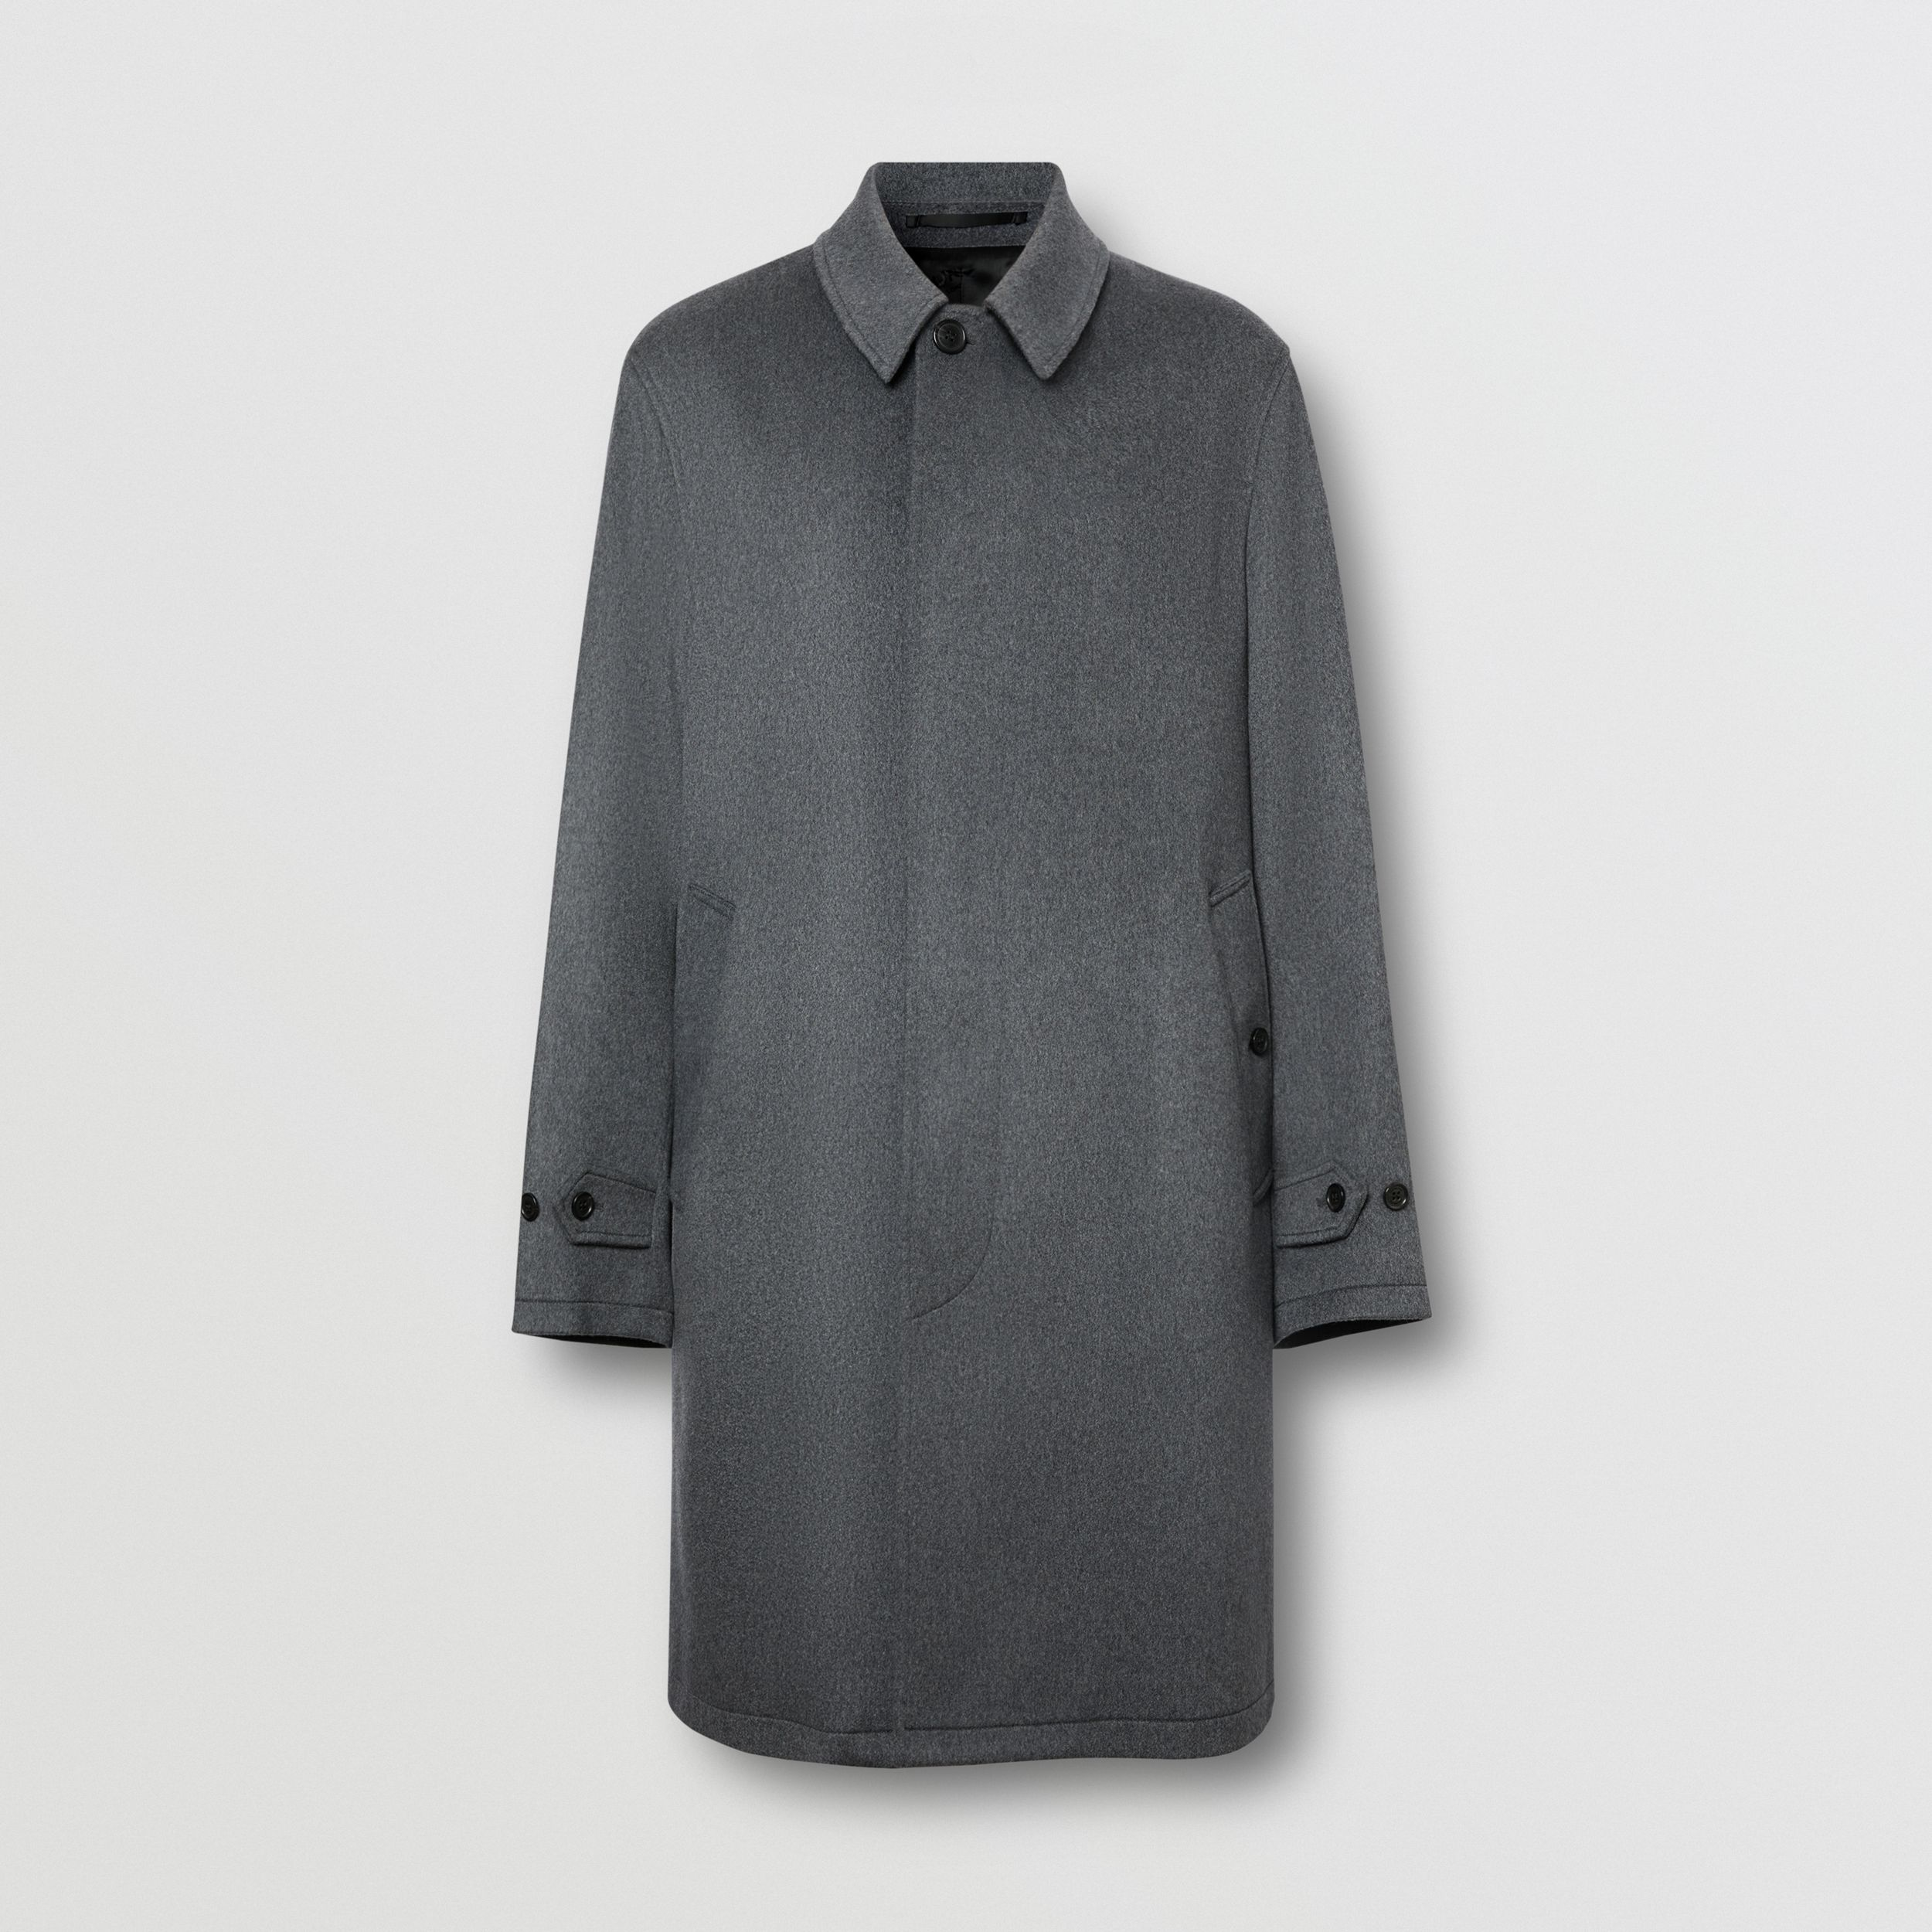 Cashmere Car Coat in Pewter Melange - Men | Burberry - 4